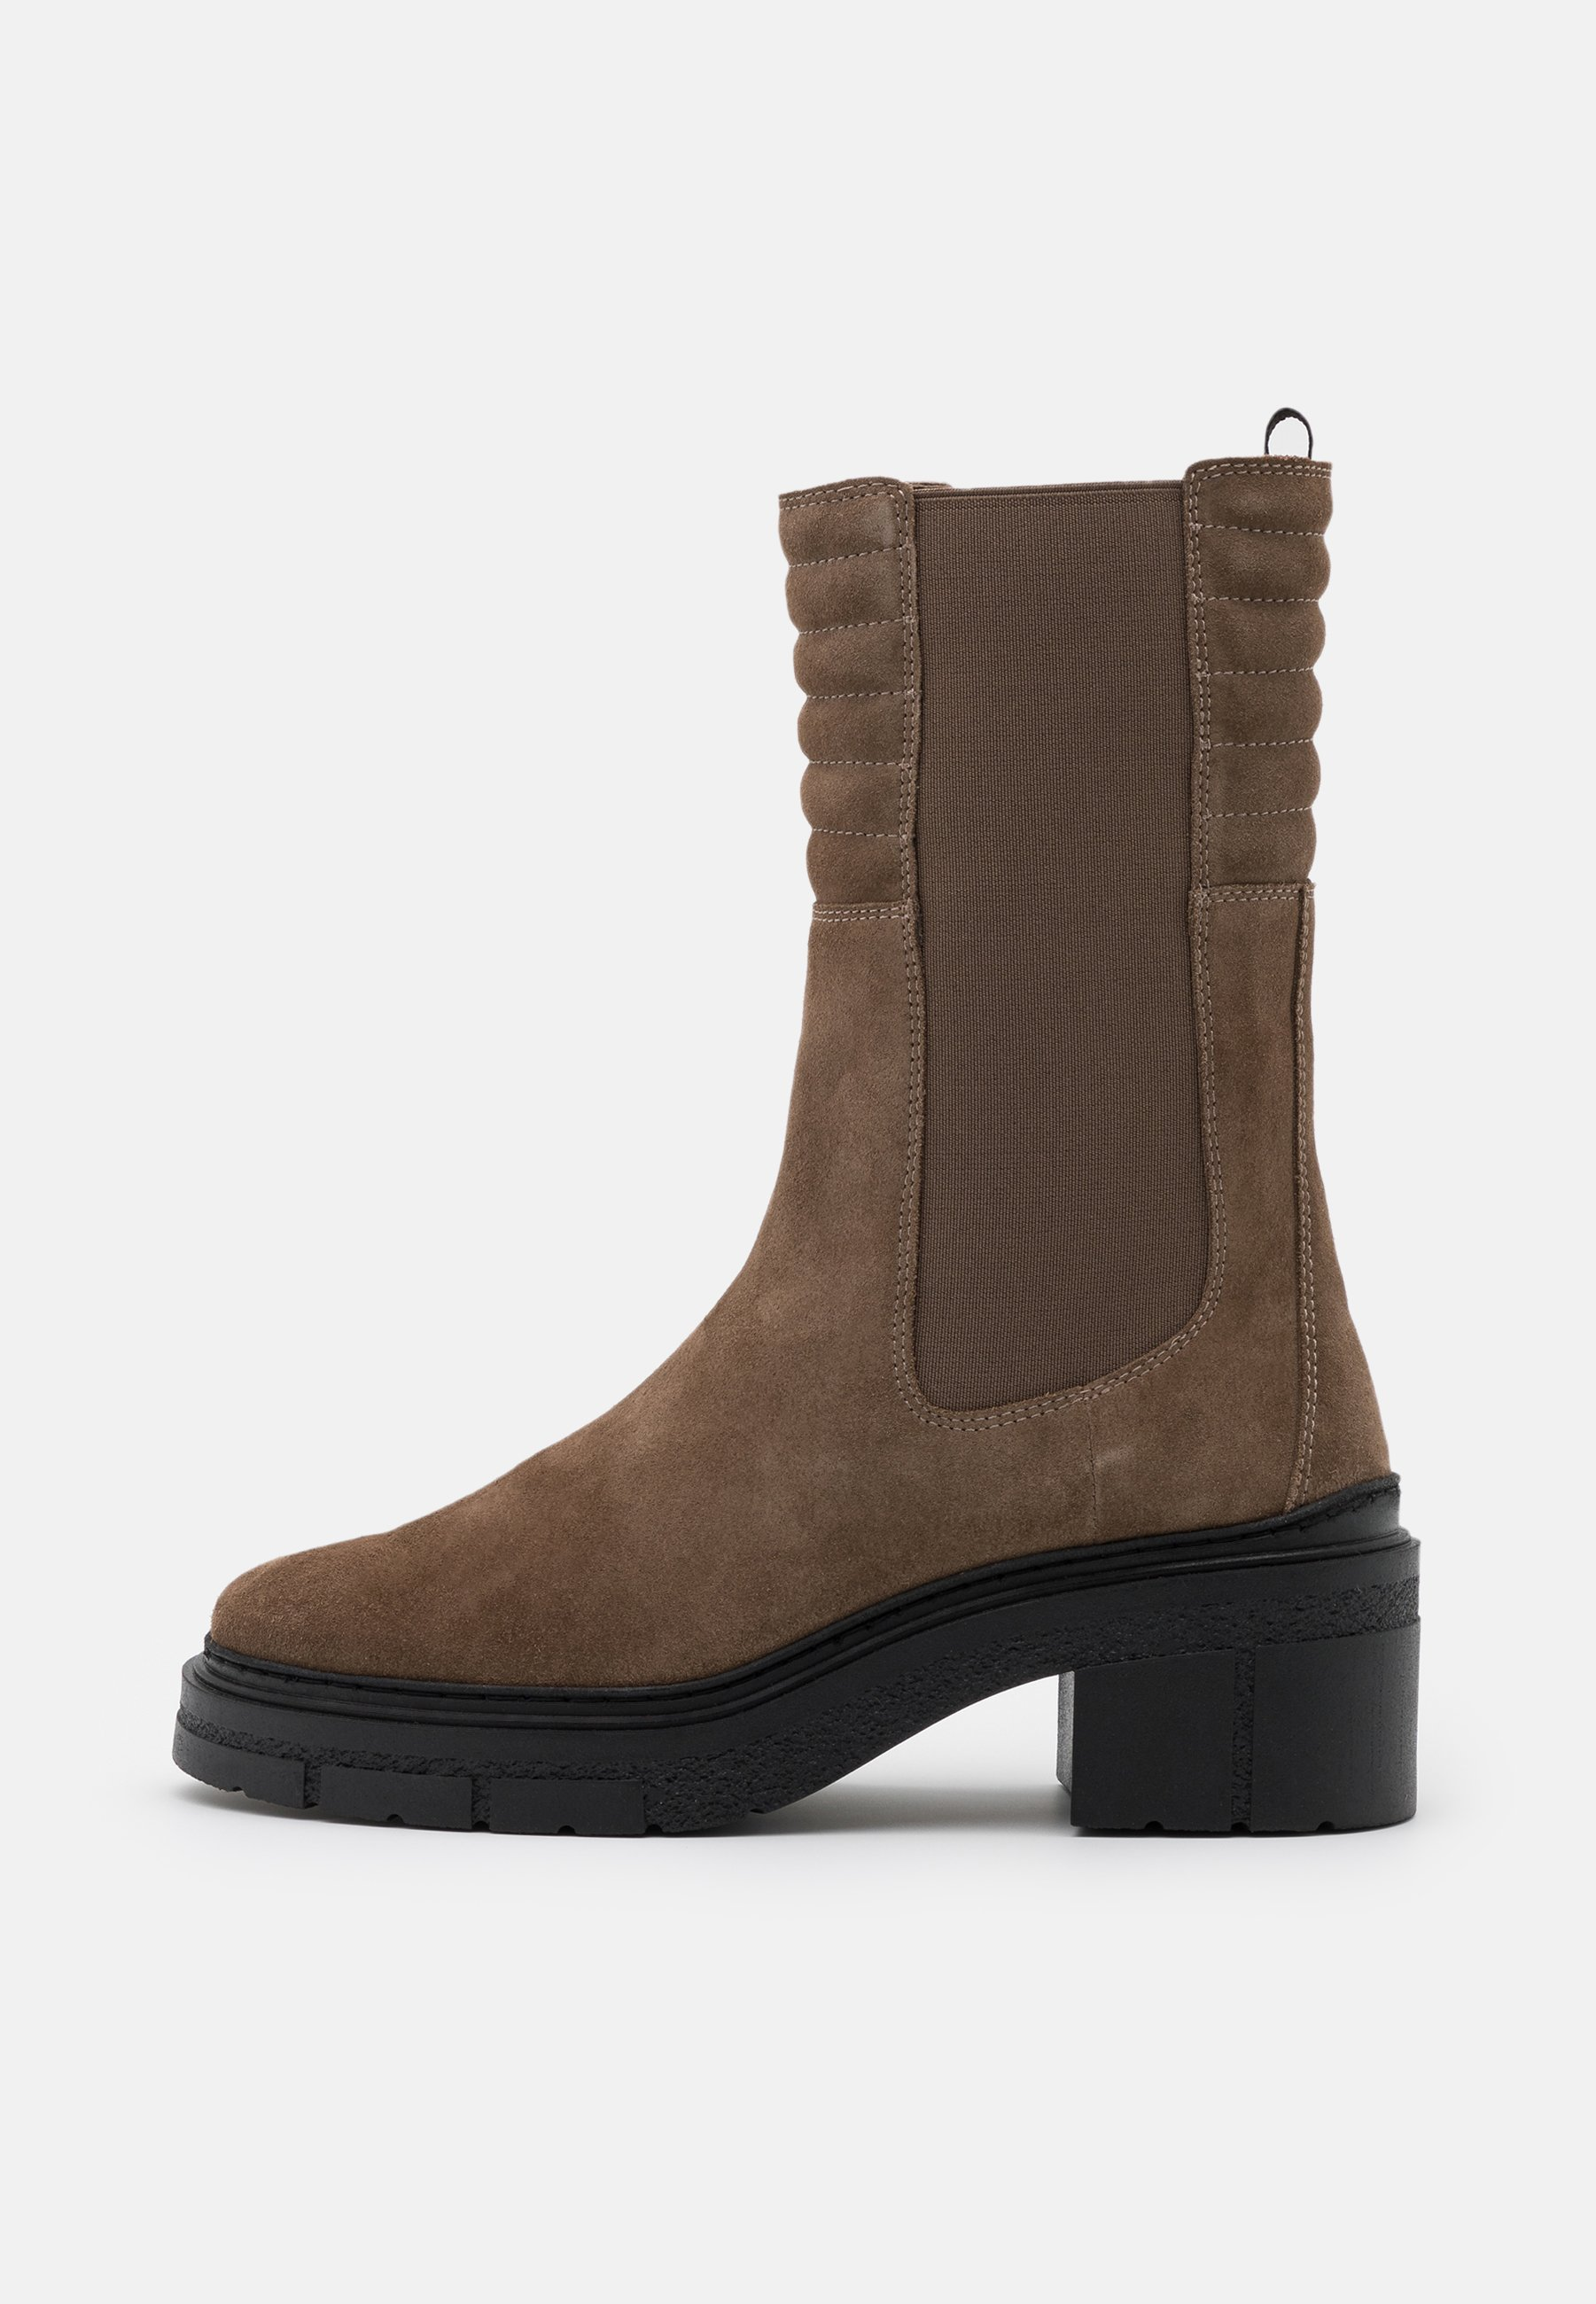 Unisa Jina - Plateaustiefel Taupe/taupe